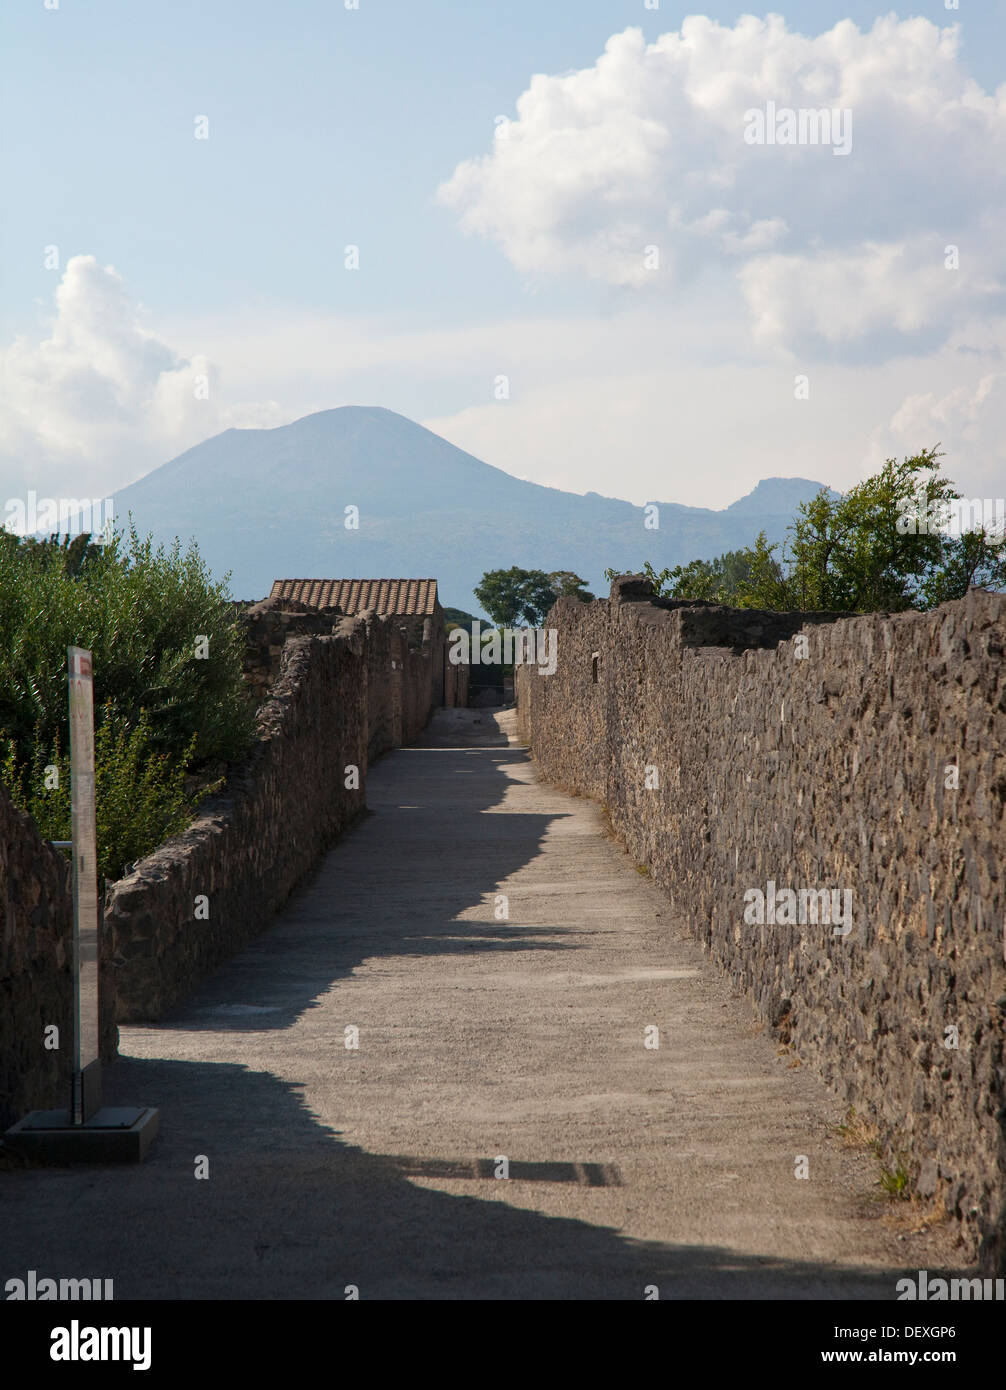 A view of Vesuvius from an analytically reflective point in Pompeii - Stock Image